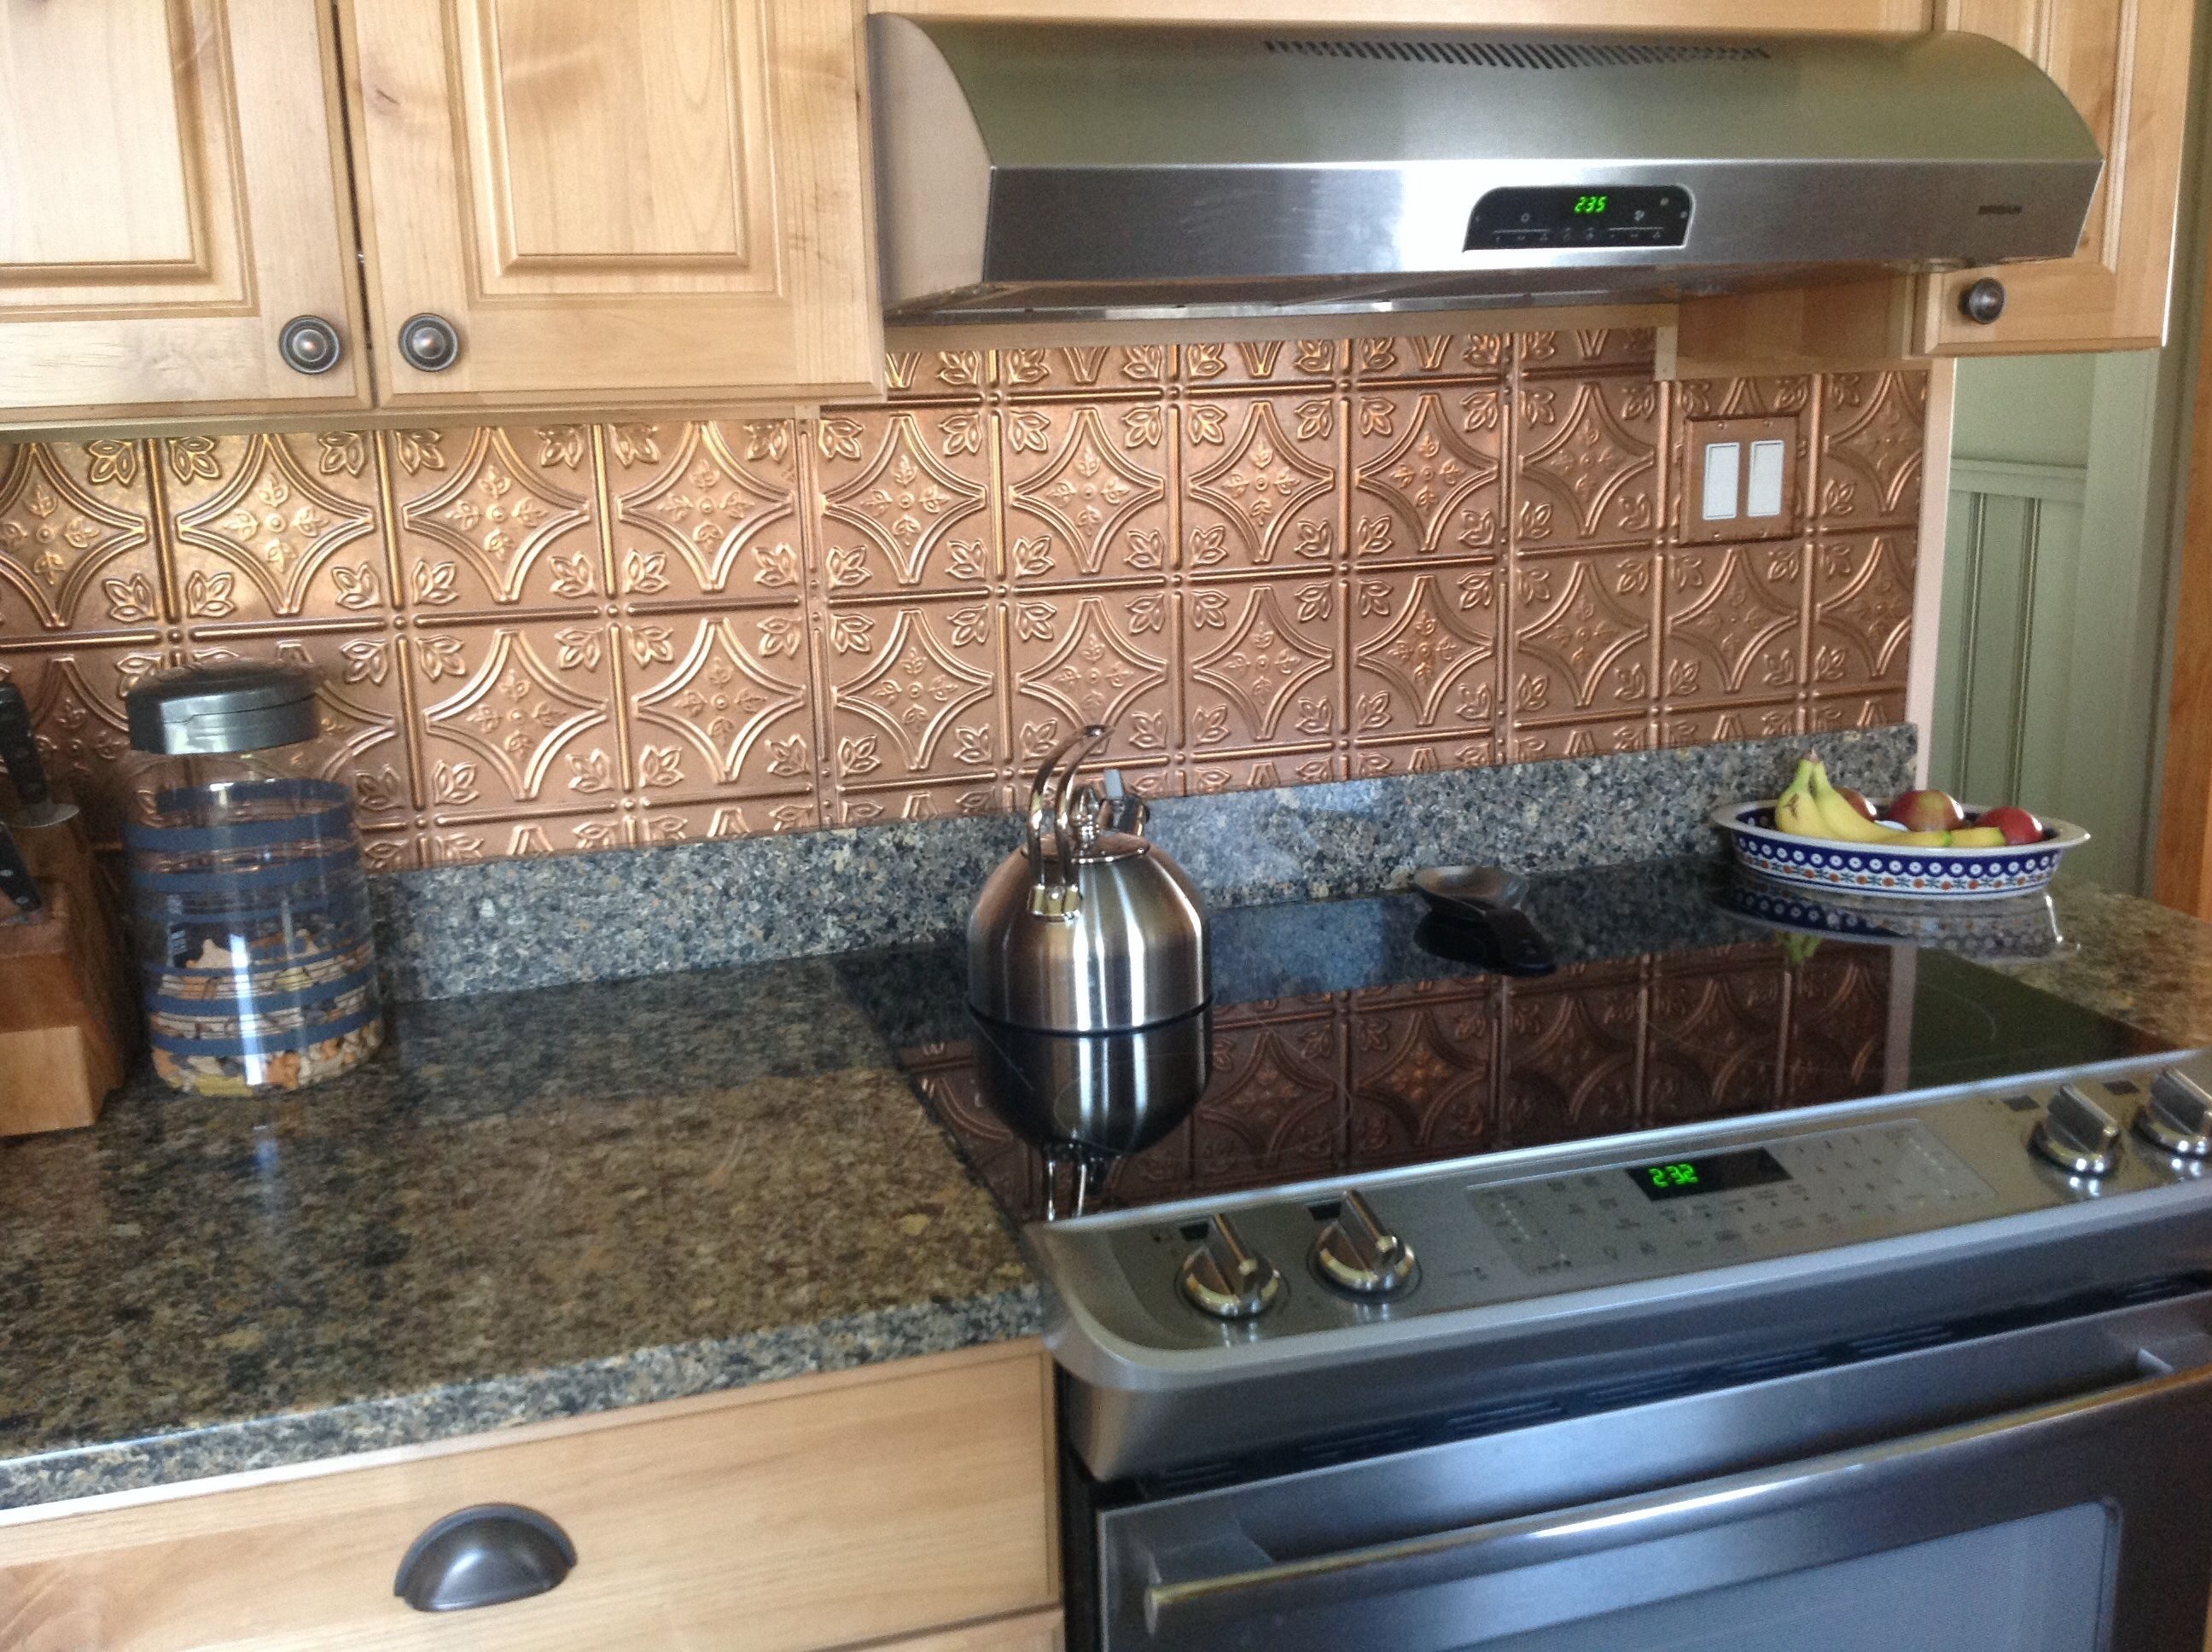 Easy Diy Kitchen Backsplashes That Cost Less Than $100 On Average Delectable Tin Backsplash For Kitchen Design Ideas